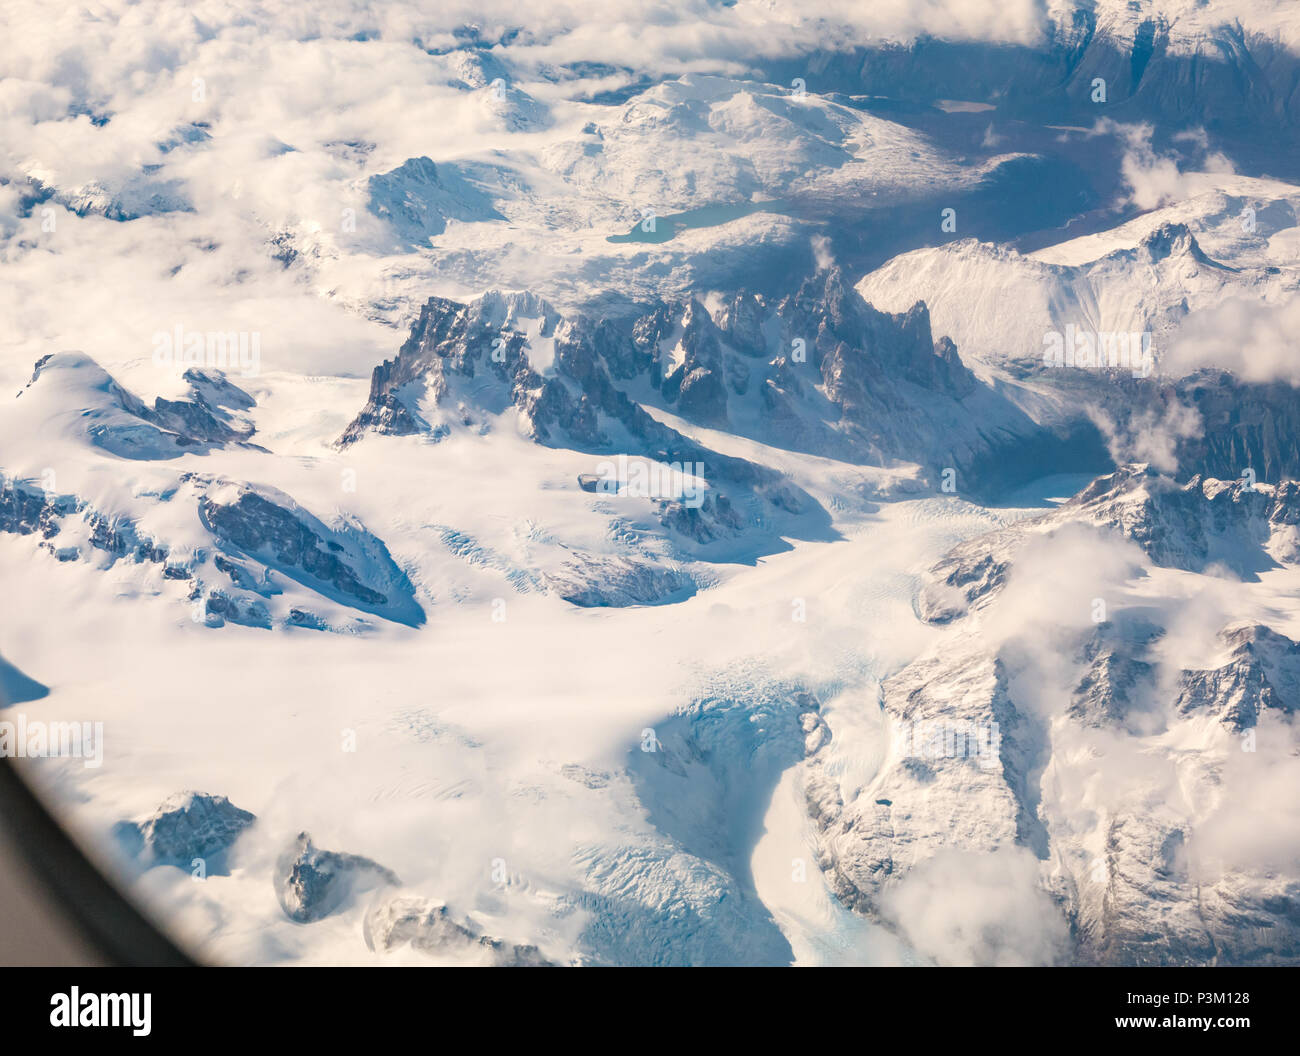 View from aeroplane window of snow covered Andes mountain peaks with glaciers, Southern Patagonian Ice field, Patagonia, Chile, South America - Stock Image